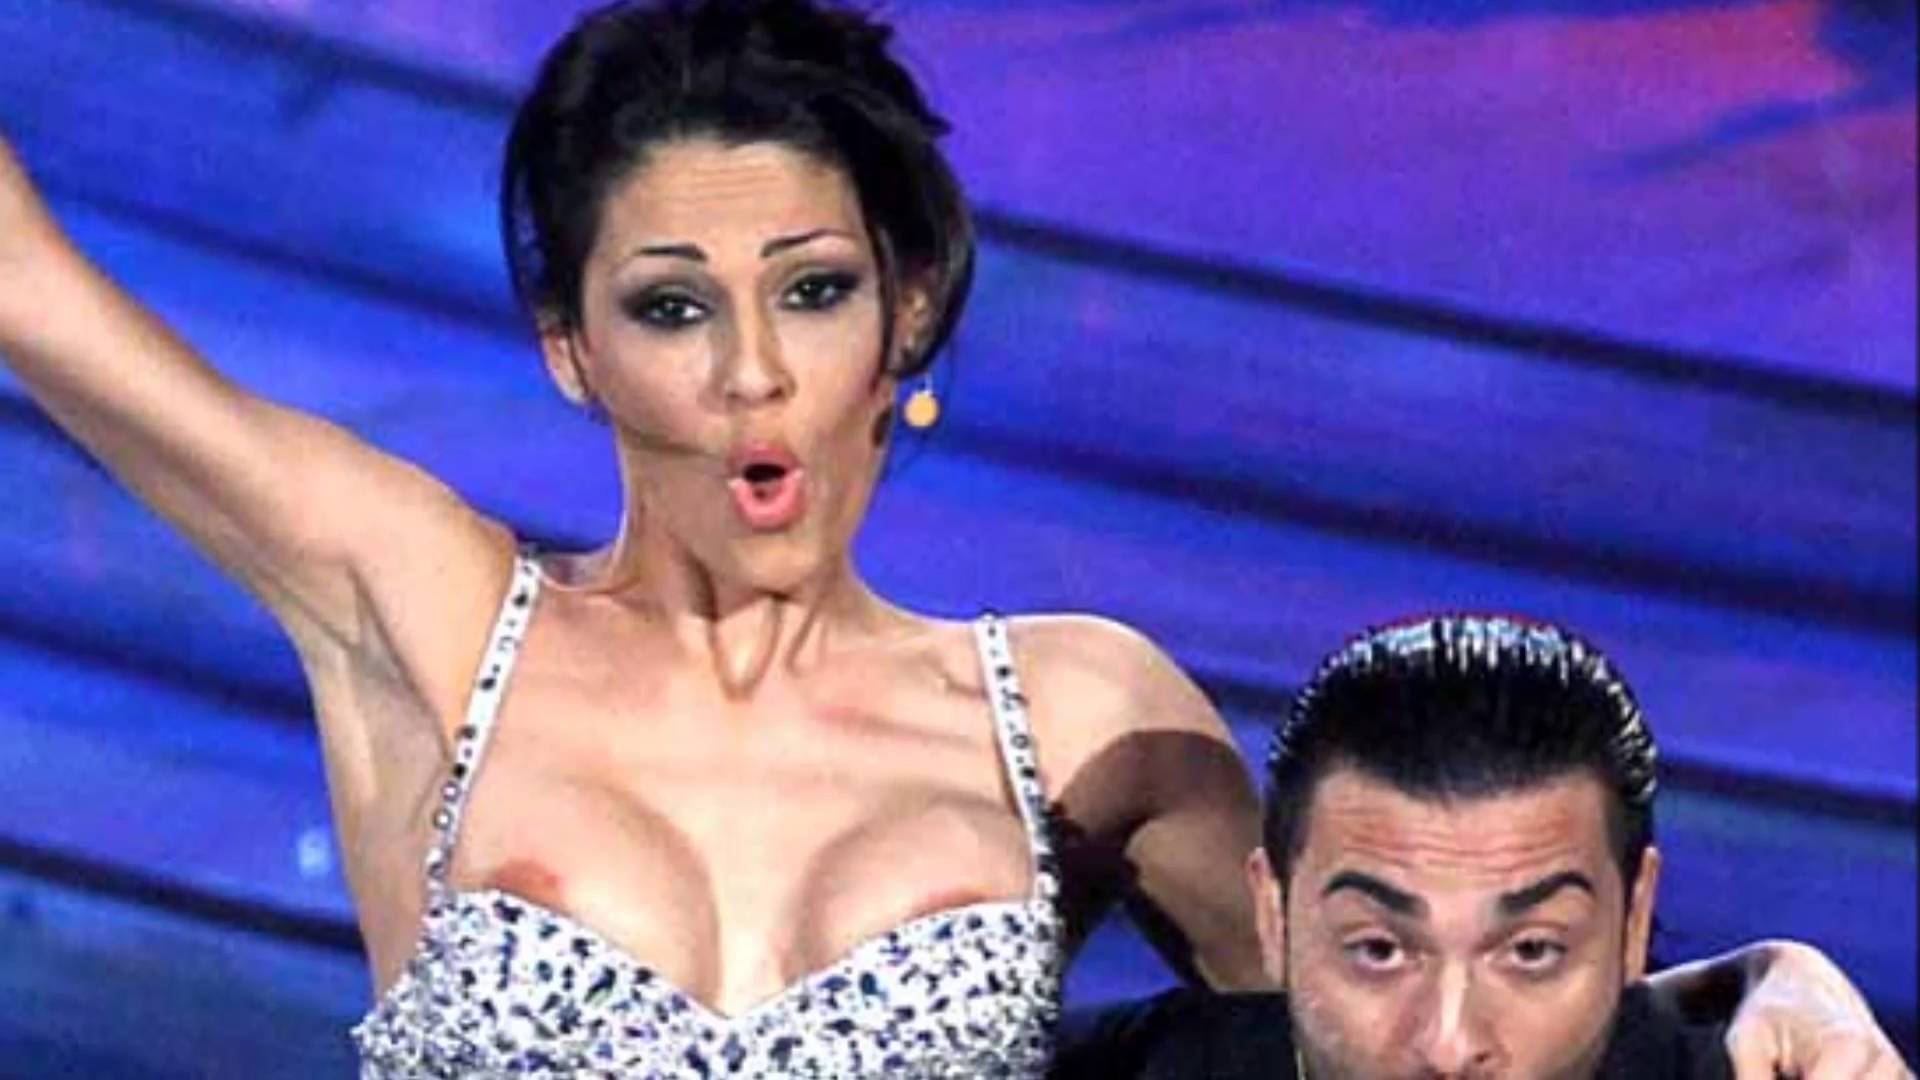 Incidenti hot in tv: tutti i siparietti sexy delle celebrities [FOTO]